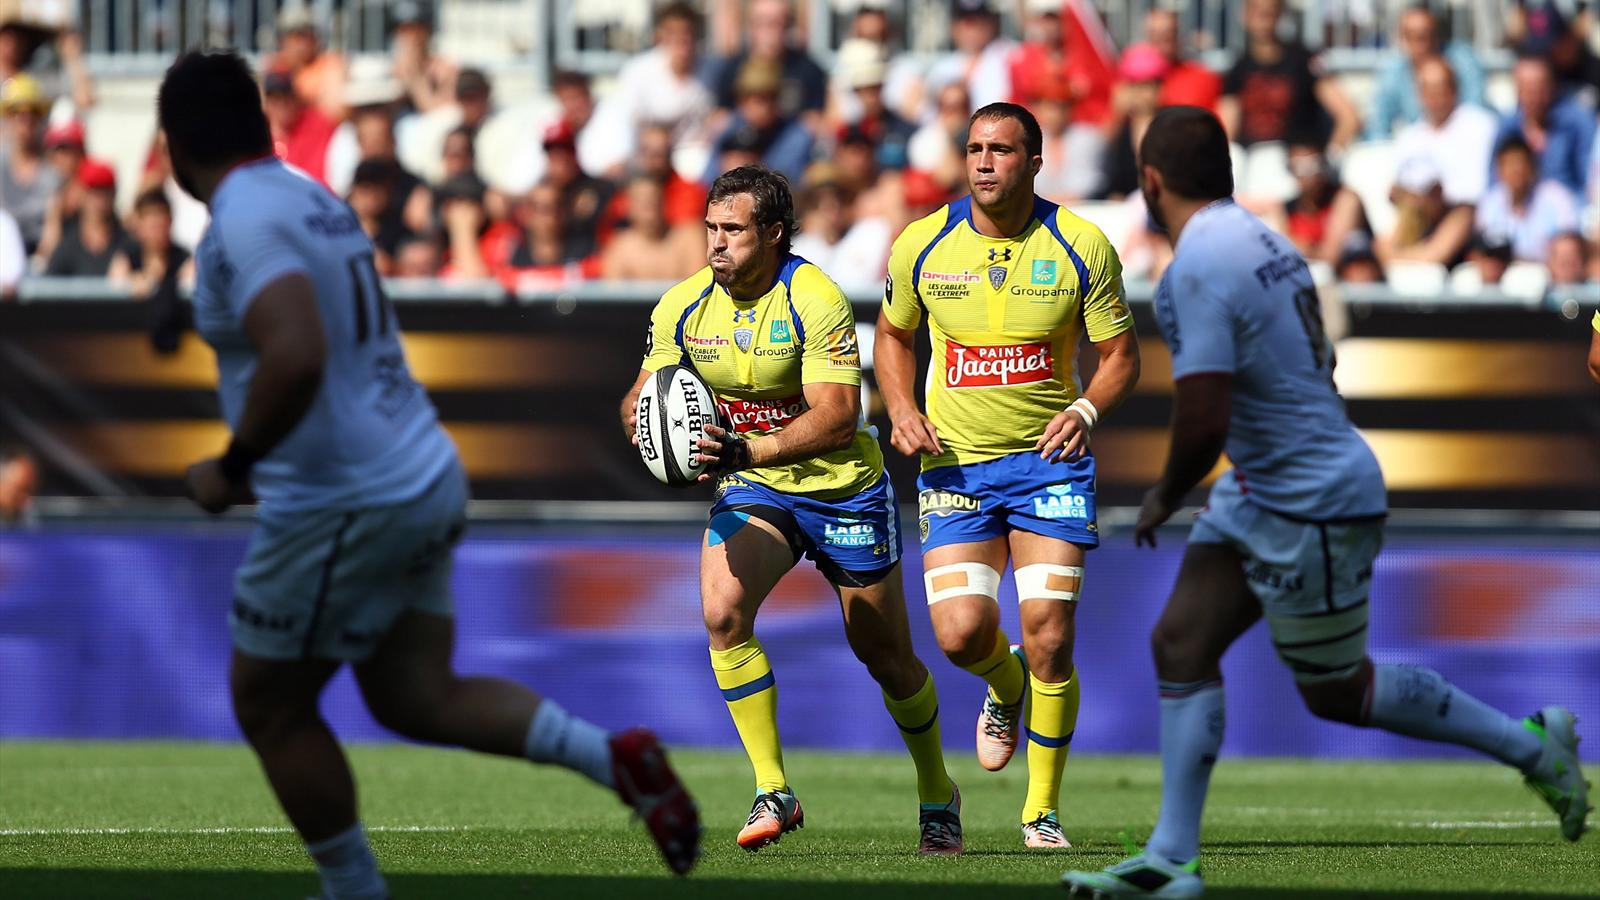 Brock James décisif en demie contre Toulouse